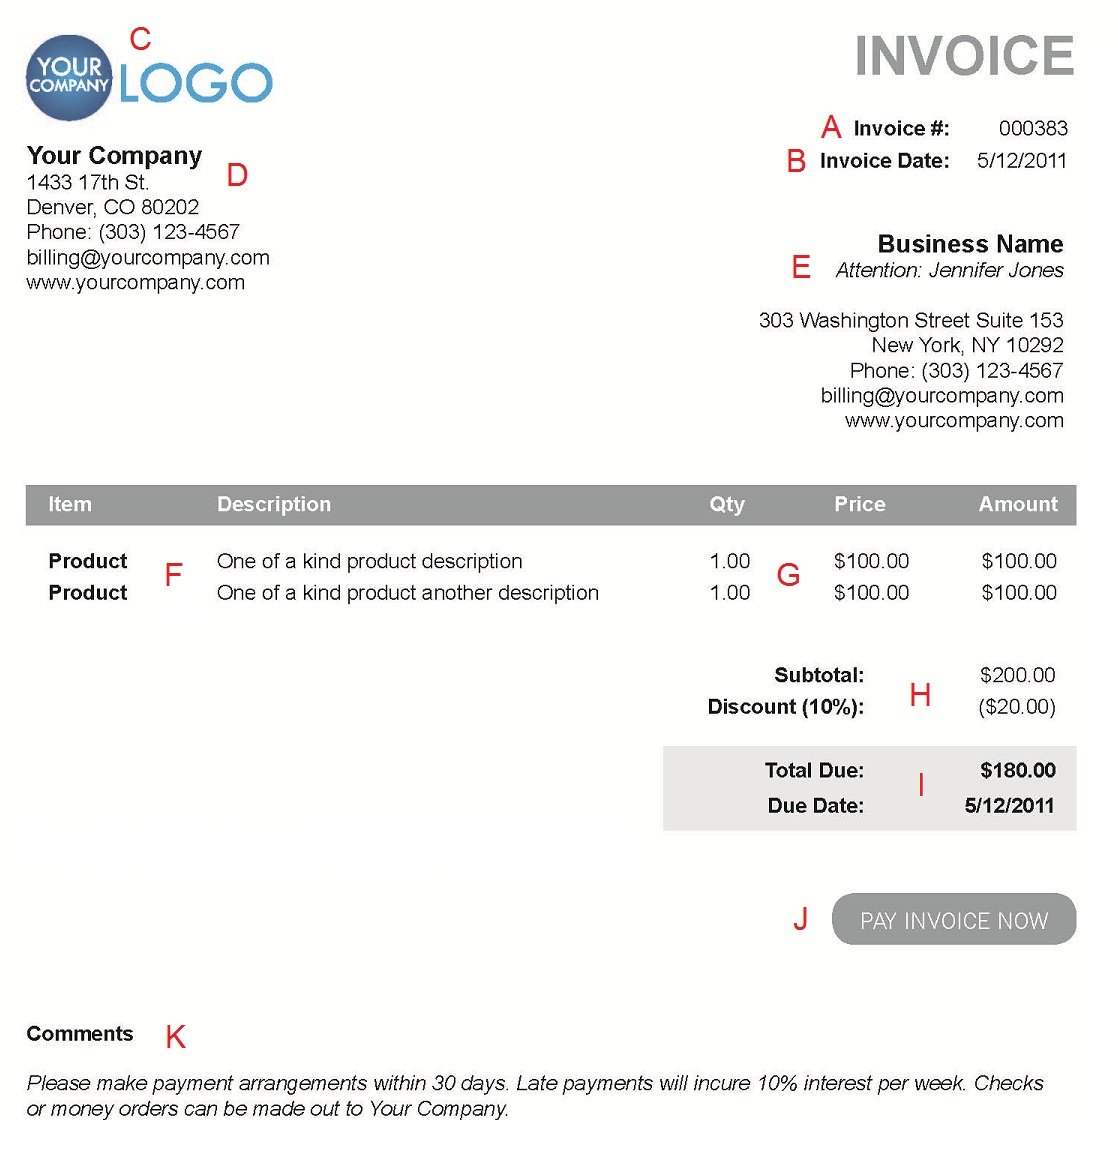 Coachoutletonlineplusus  Remarkable The  Different Sections Of An Electronic Payment Invoice With Great A  With Endearing Professional Service Invoice Template Also Sample Of Sales Invoice In Addition Sage One Invoicing And Travel Agent Invoice As Well As Dhl Invoices Additionally Invoice Discounting Factoring From Paysimplecom With Coachoutletonlineplusus  Great The  Different Sections Of An Electronic Payment Invoice With Endearing A  And Remarkable Professional Service Invoice Template Also Sample Of Sales Invoice In Addition Sage One Invoicing From Paysimplecom